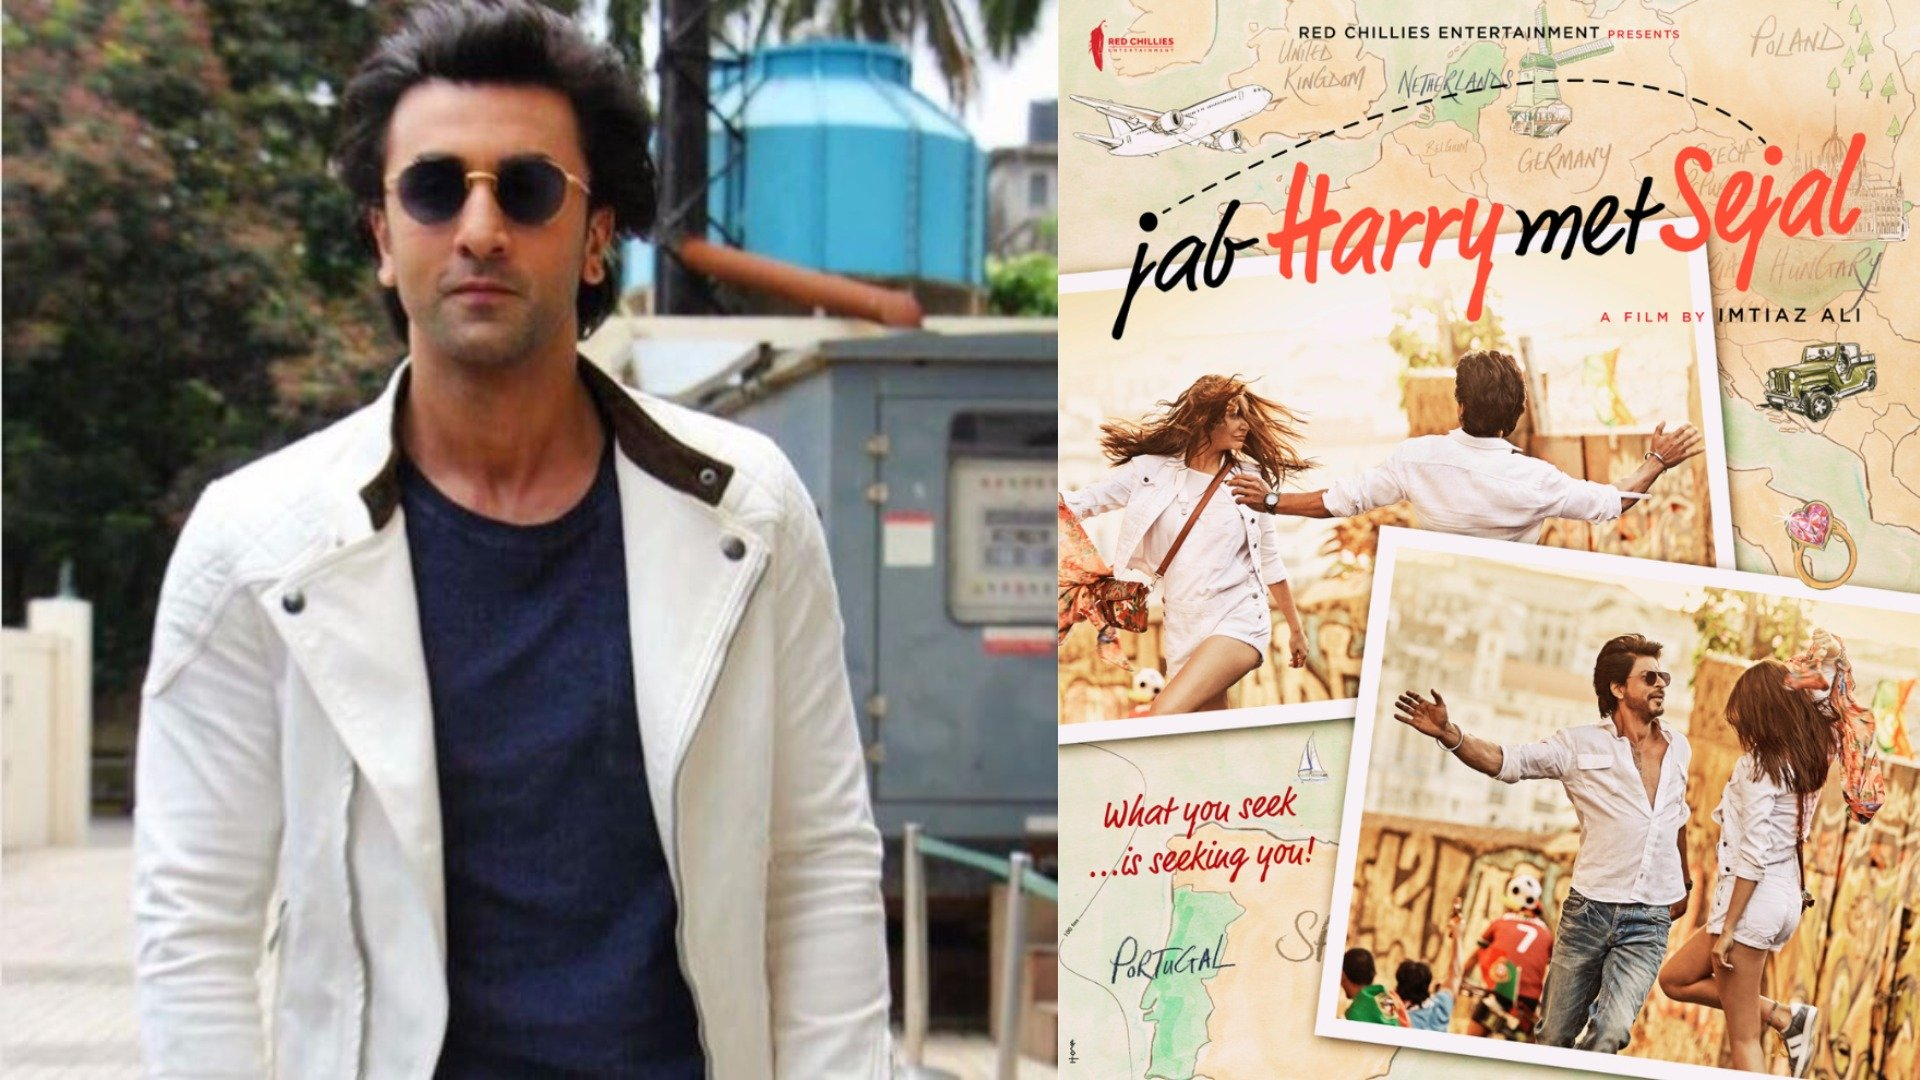 Ranbir Kapoor Claims That He Suggested The Title Jab Harry Met Sejal